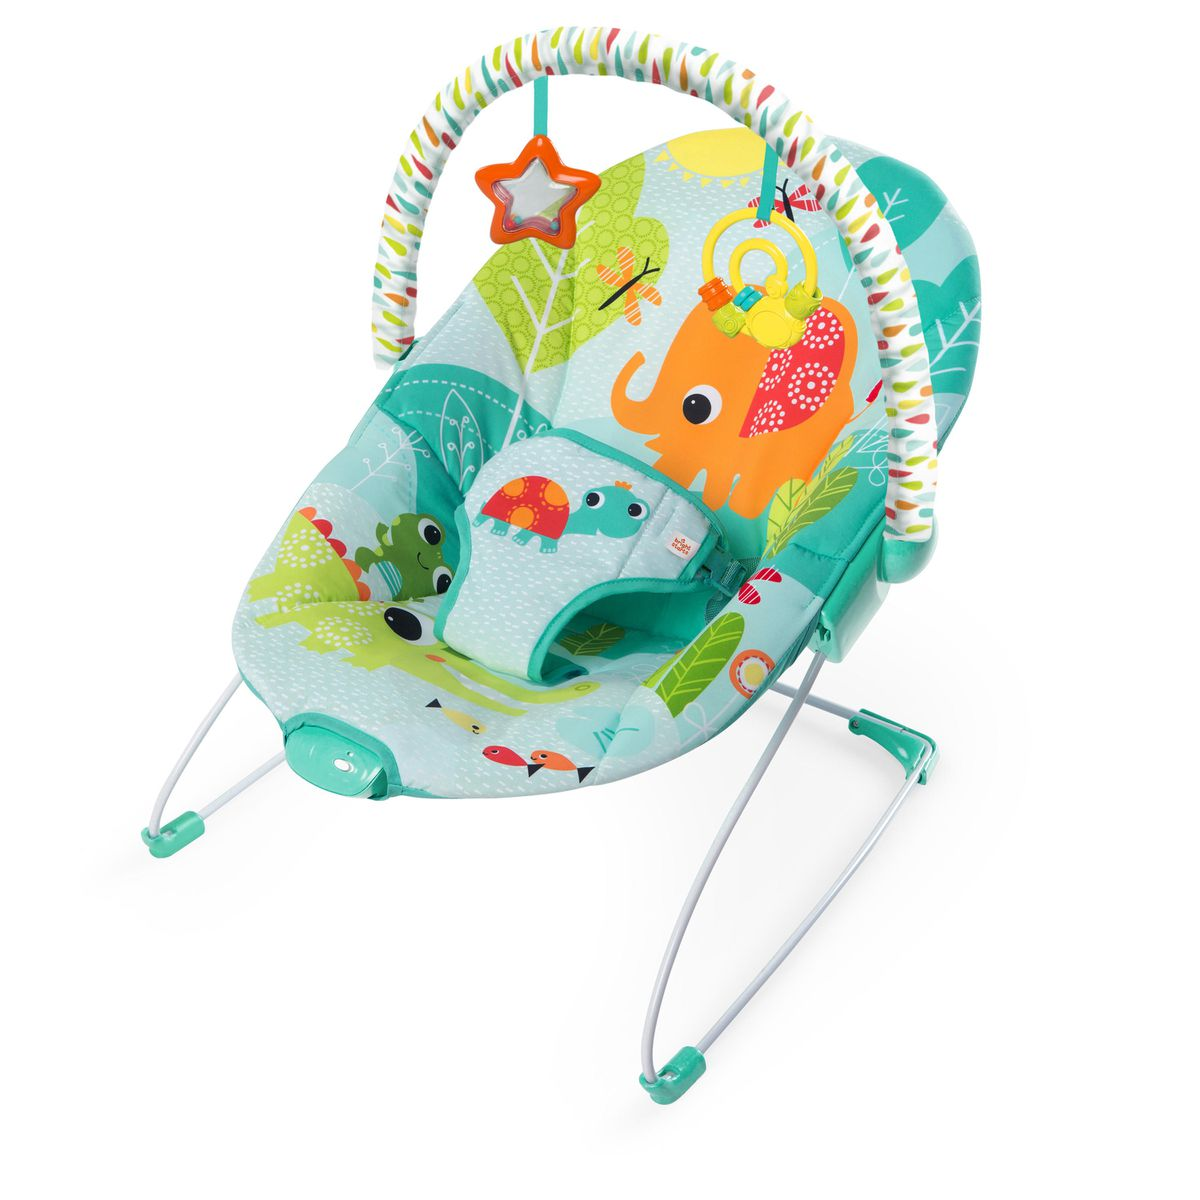 Bouncer Baby Bright Starts Vibrating Bouncer Raindrop Rainforest